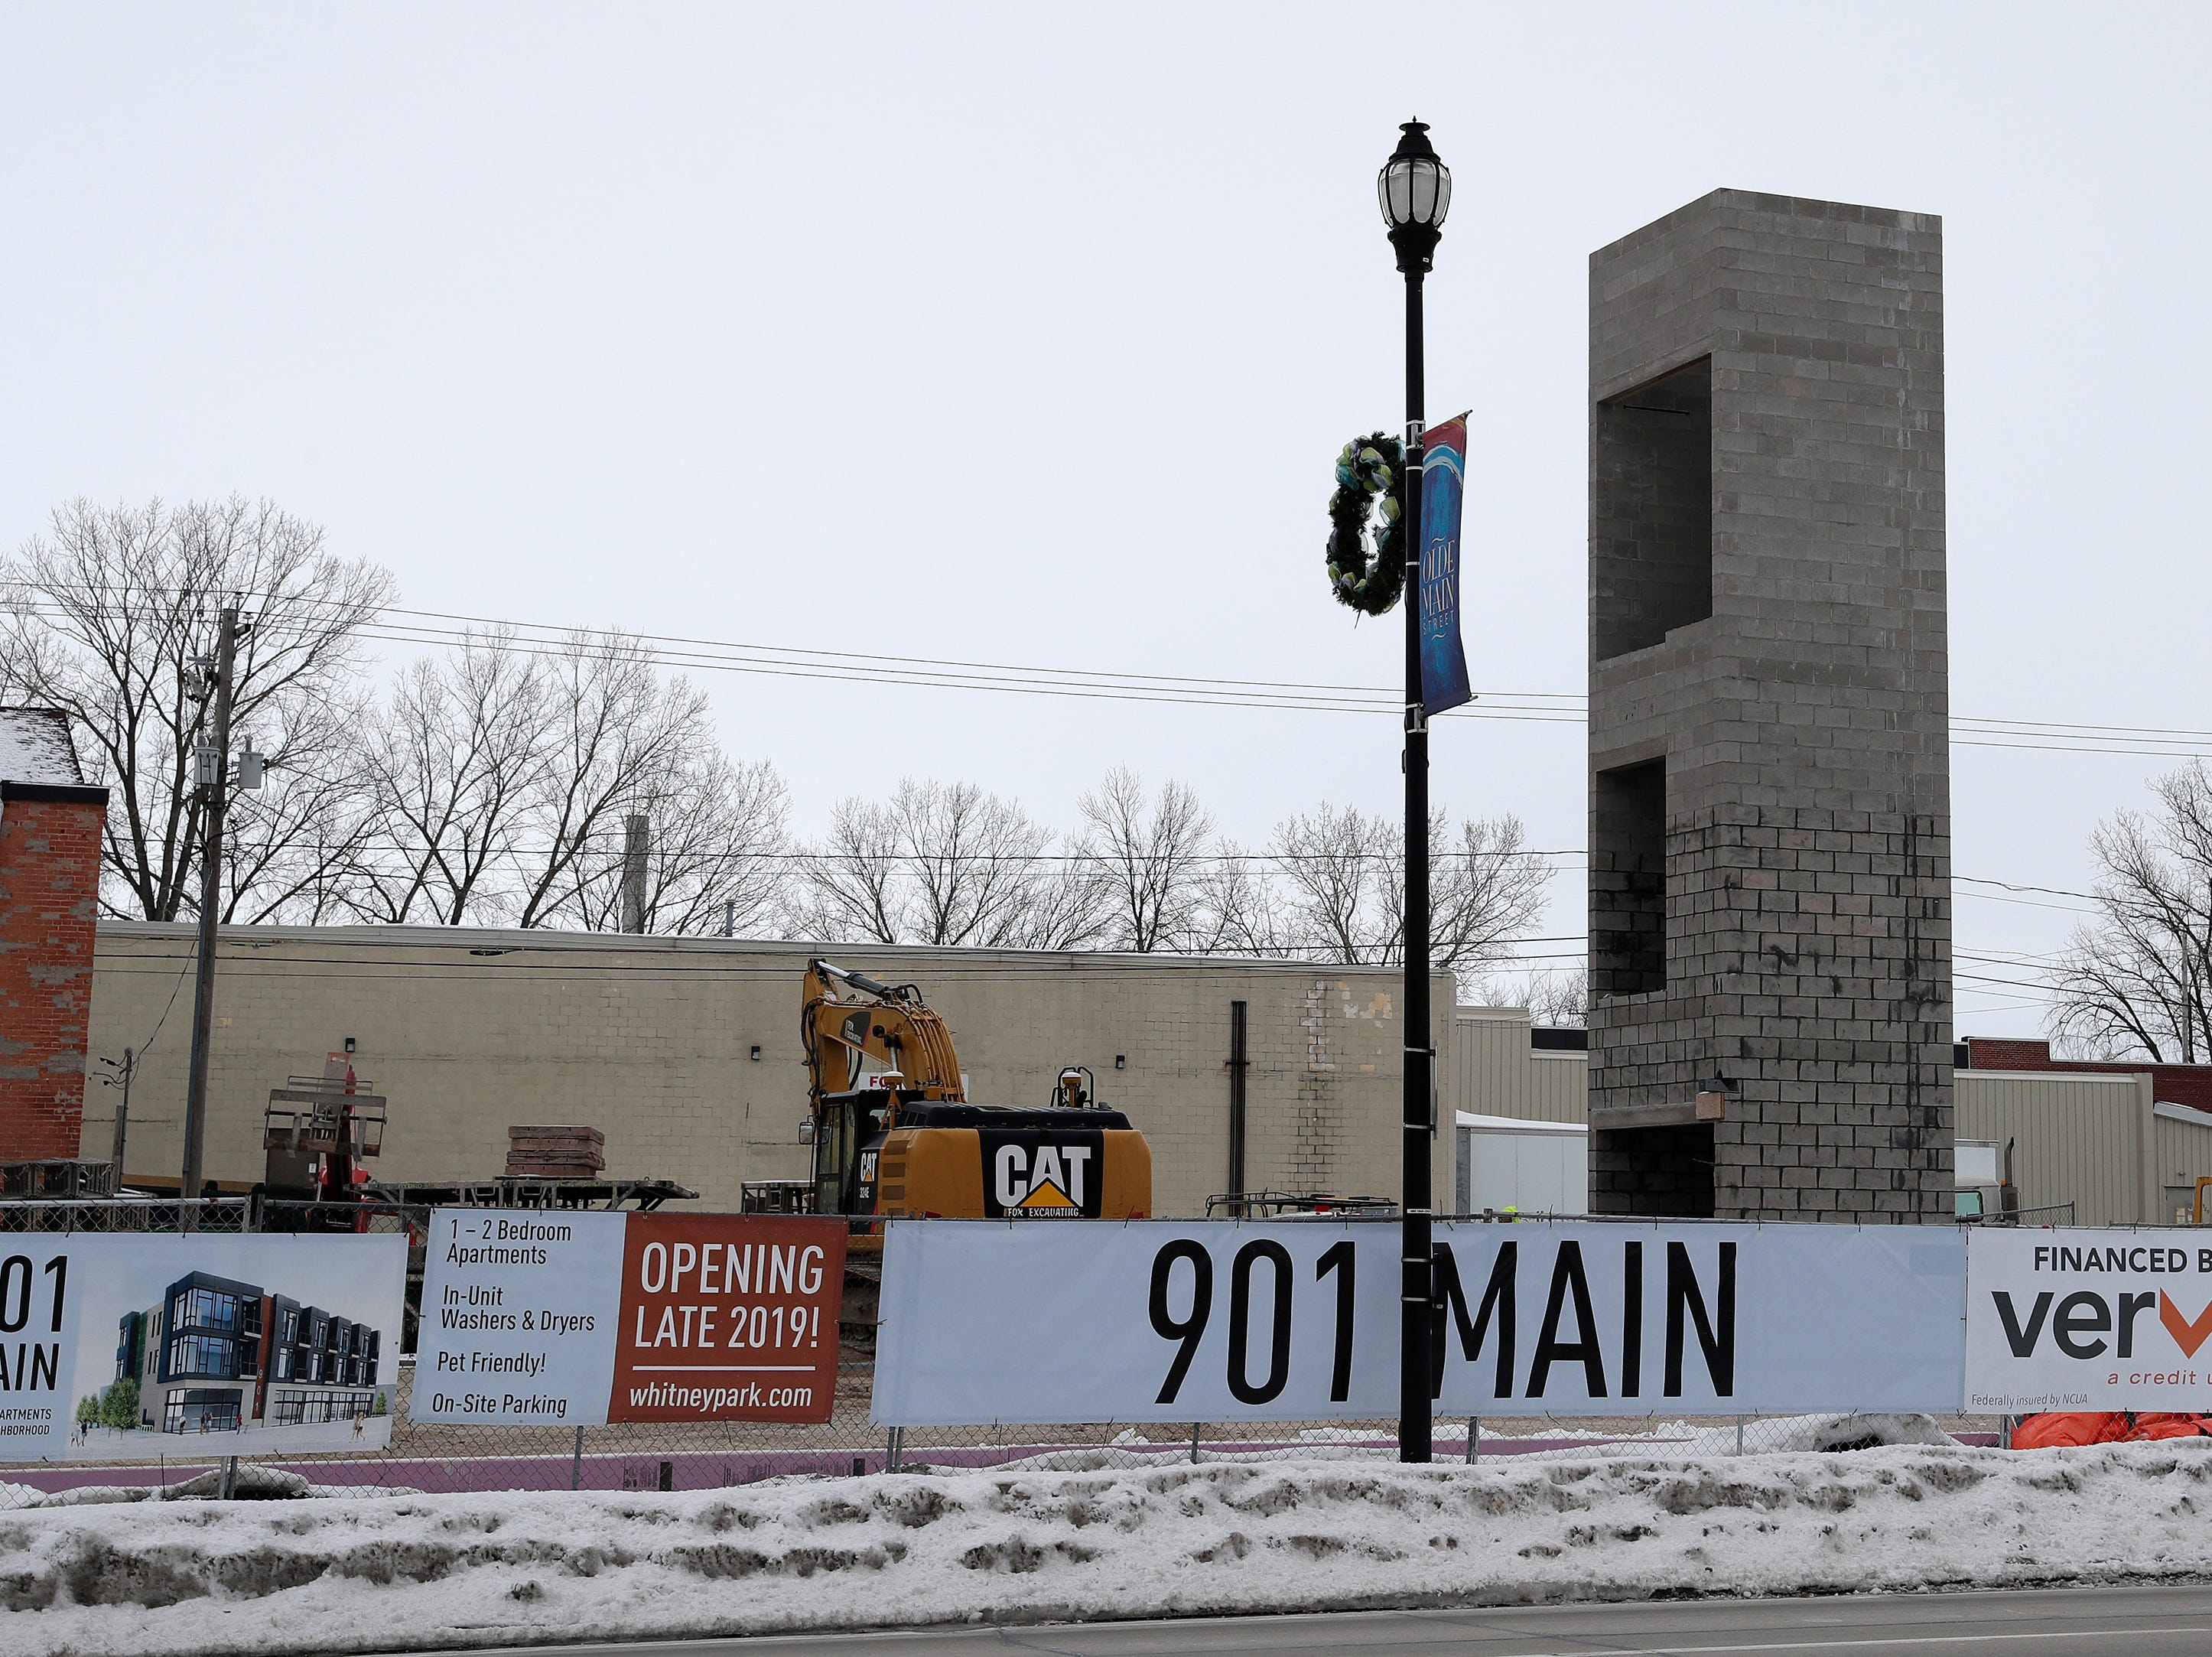 Construction work continues on a mixed-use building on the 900 block of Main St on Tuesday, February 26, 2019 in Green Bay, Wis.